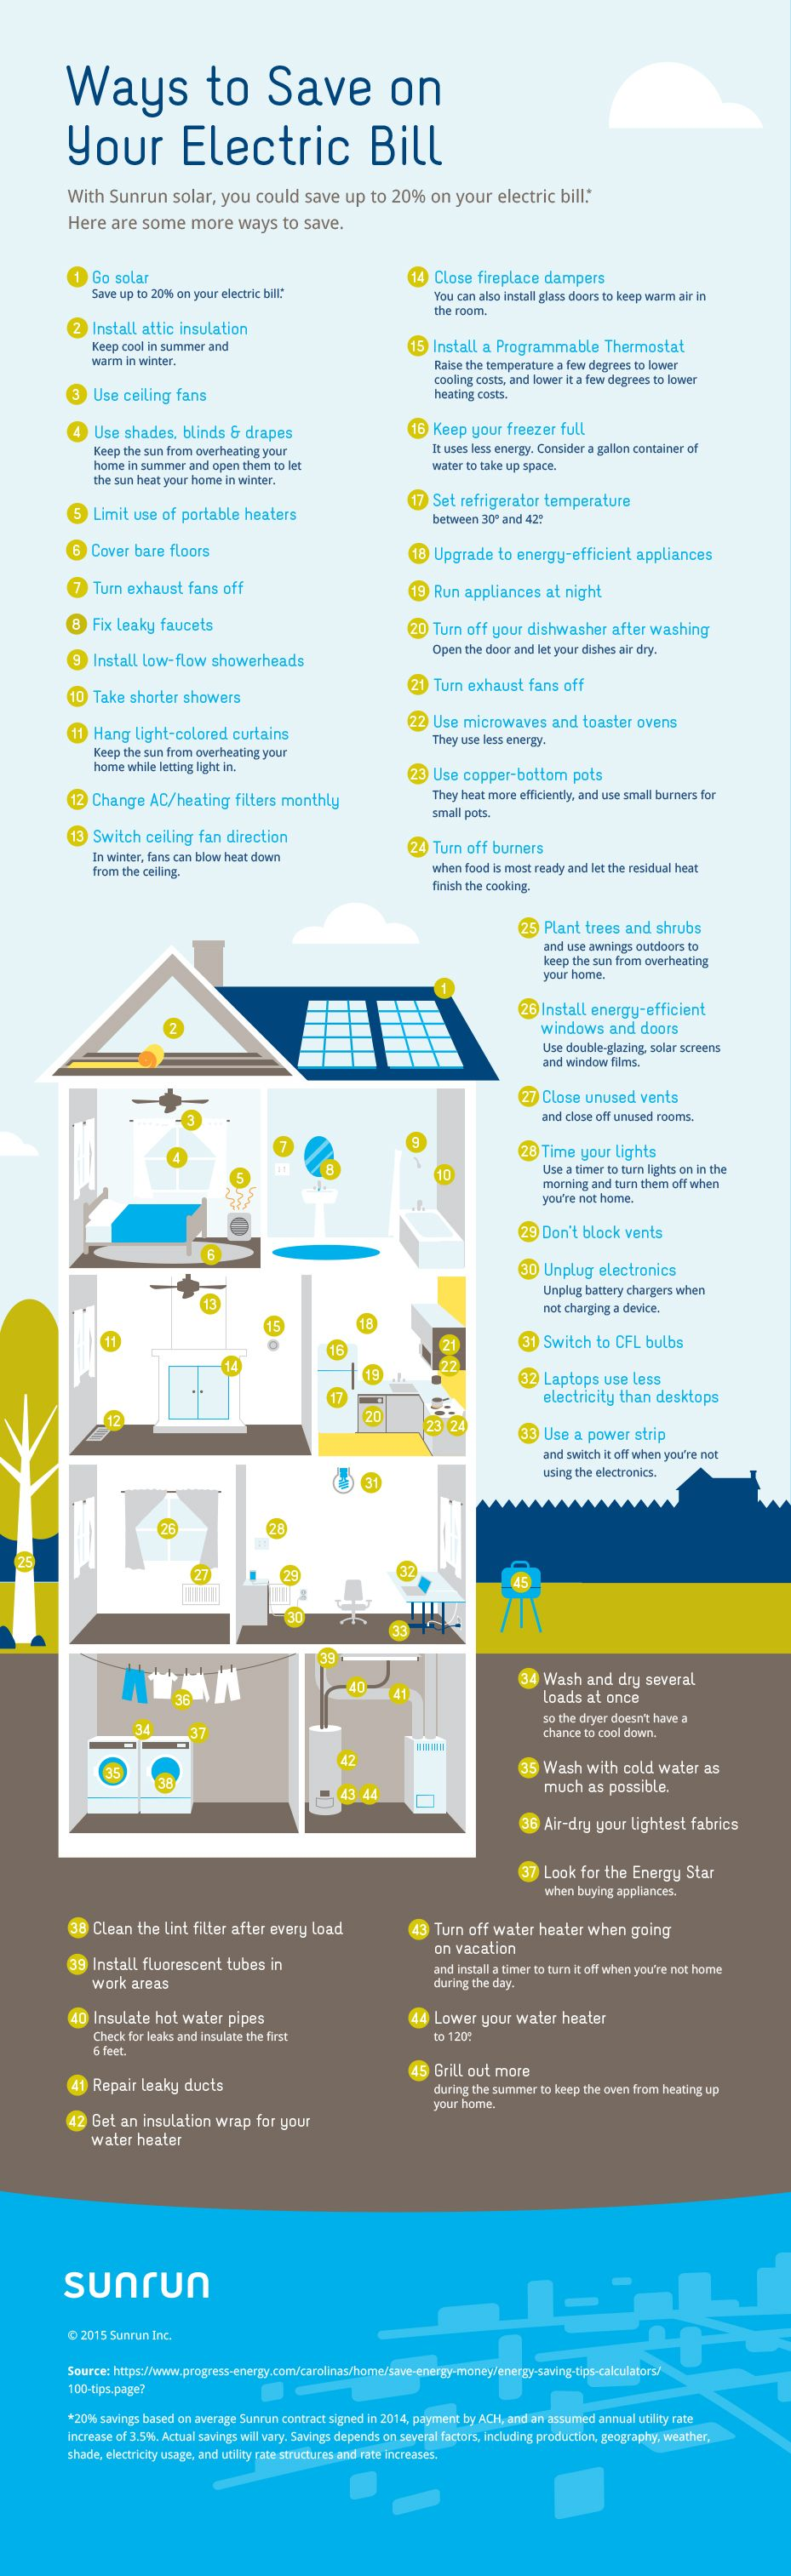 Click Through To Find Out Ways Save On Your Electric Bill The Real Truth Behind Household Power Savers Eep